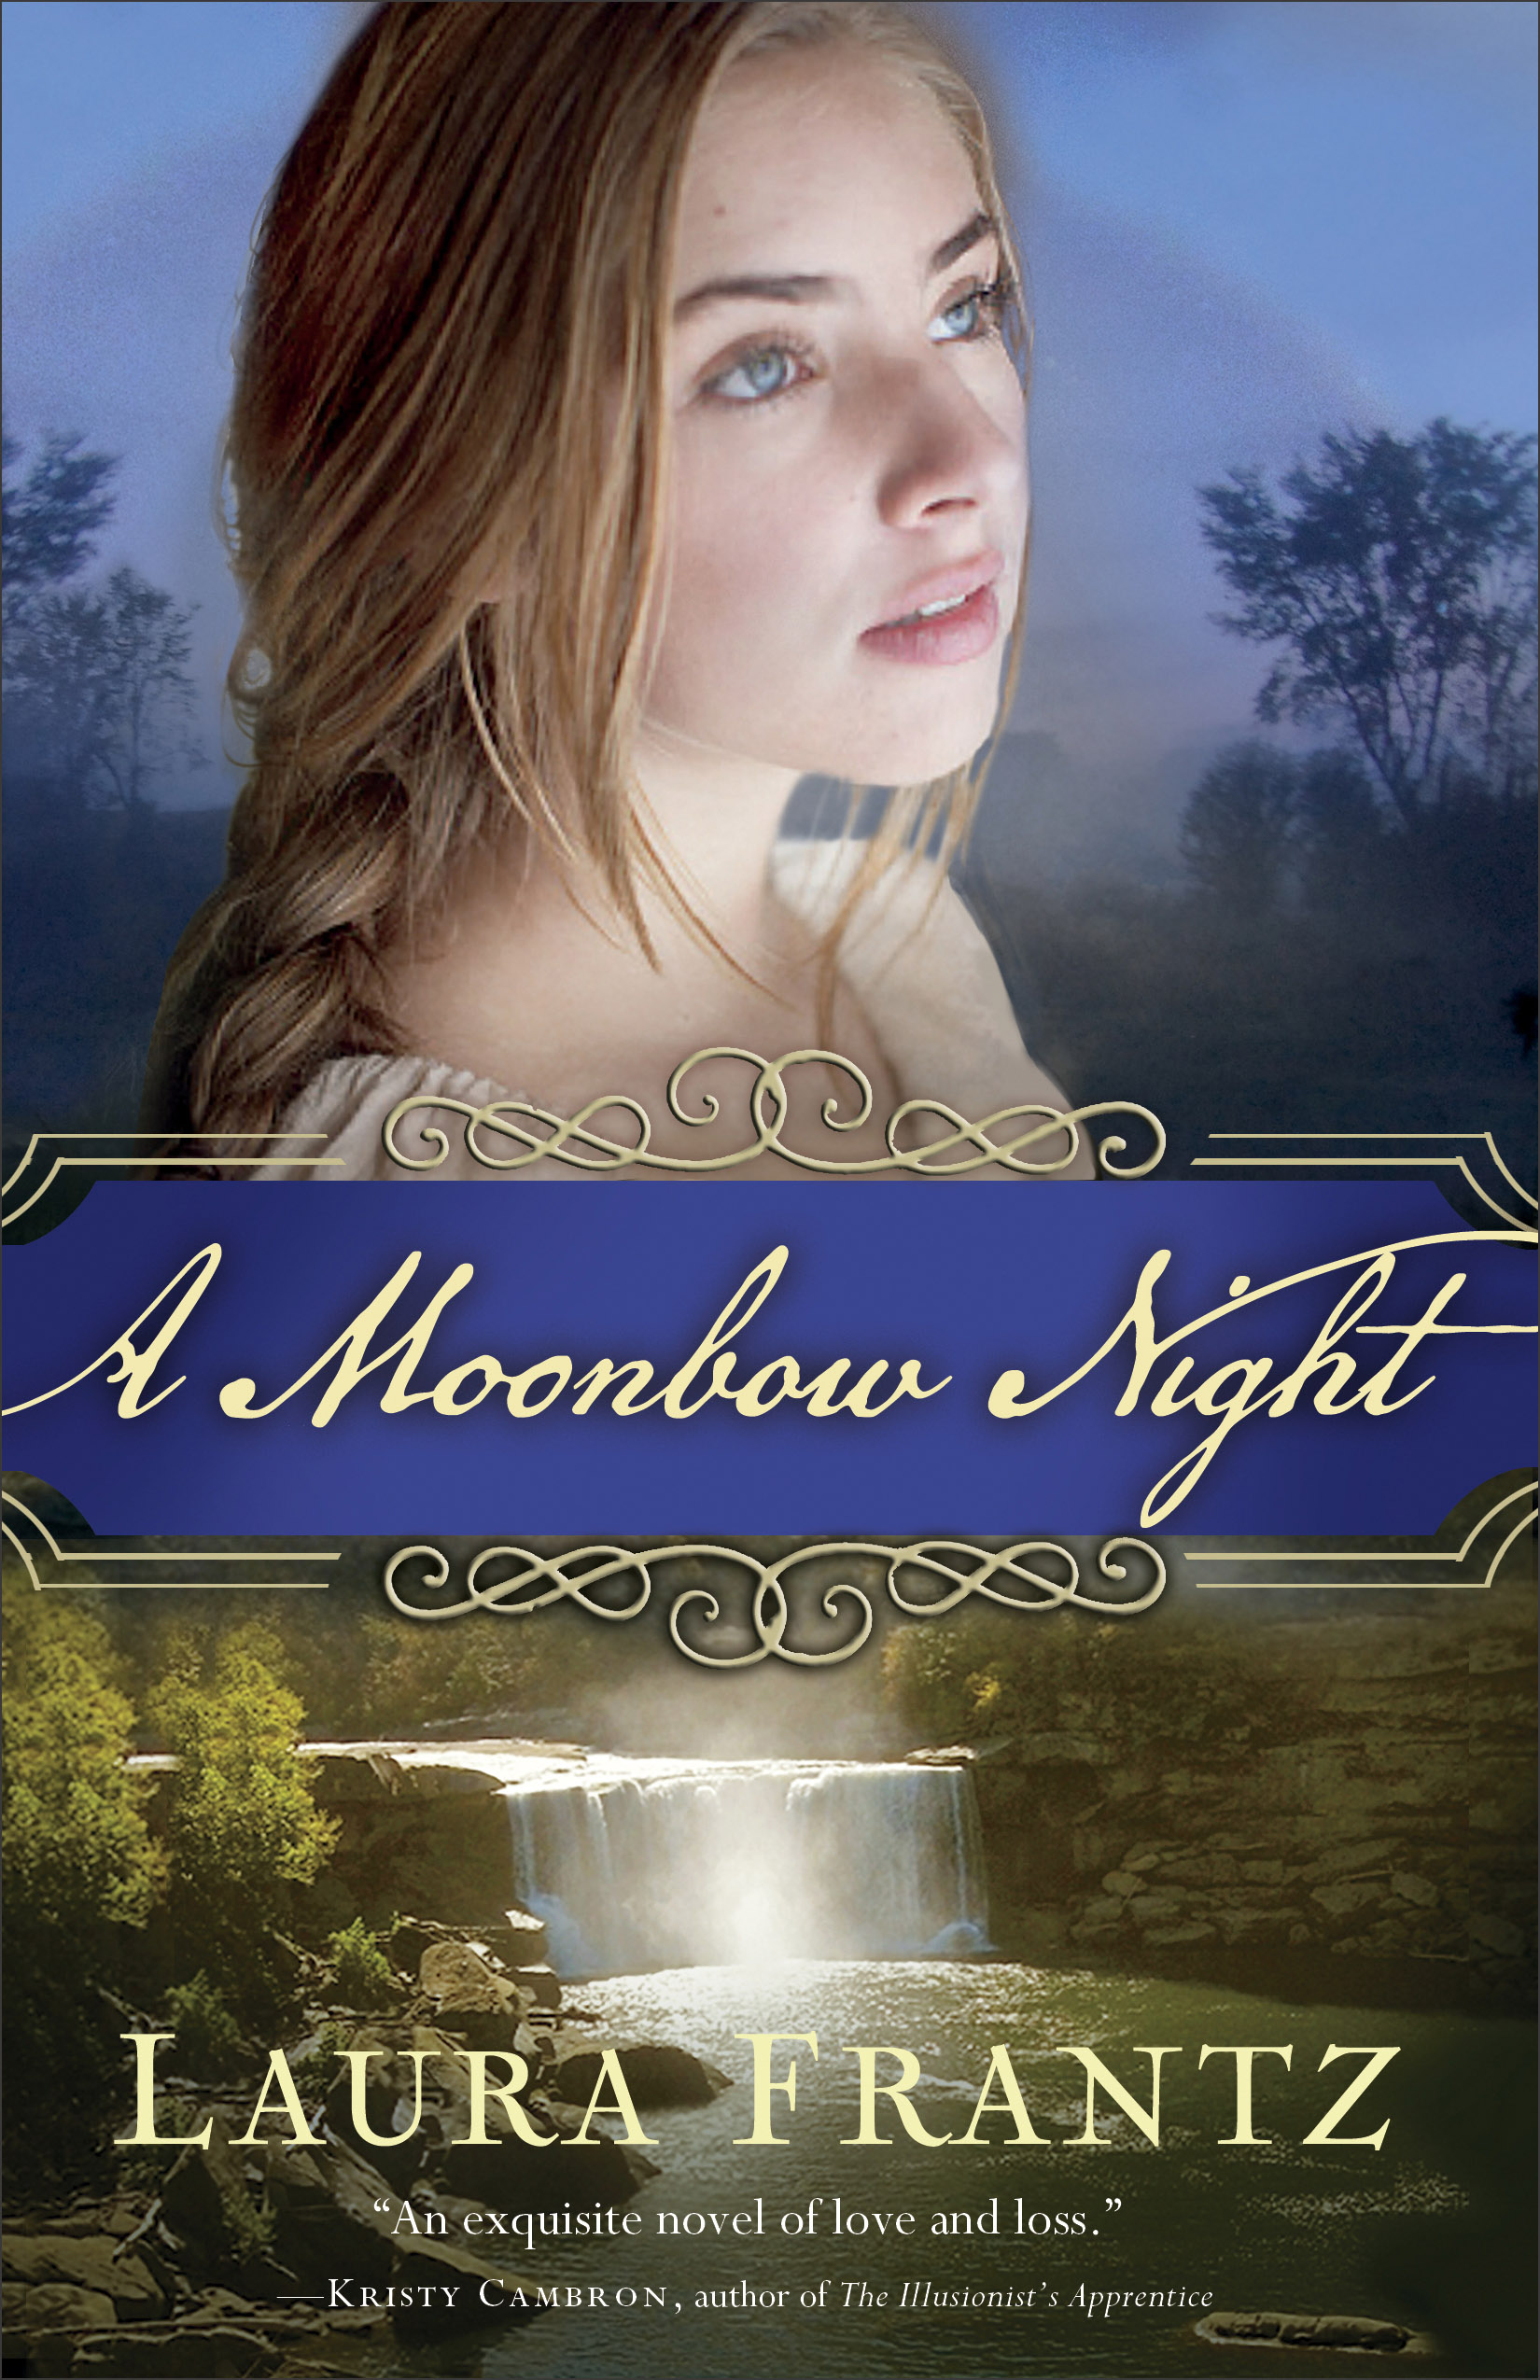 Book review of A Moonbow Night by Laura Frantz (Revell) by papertapepins